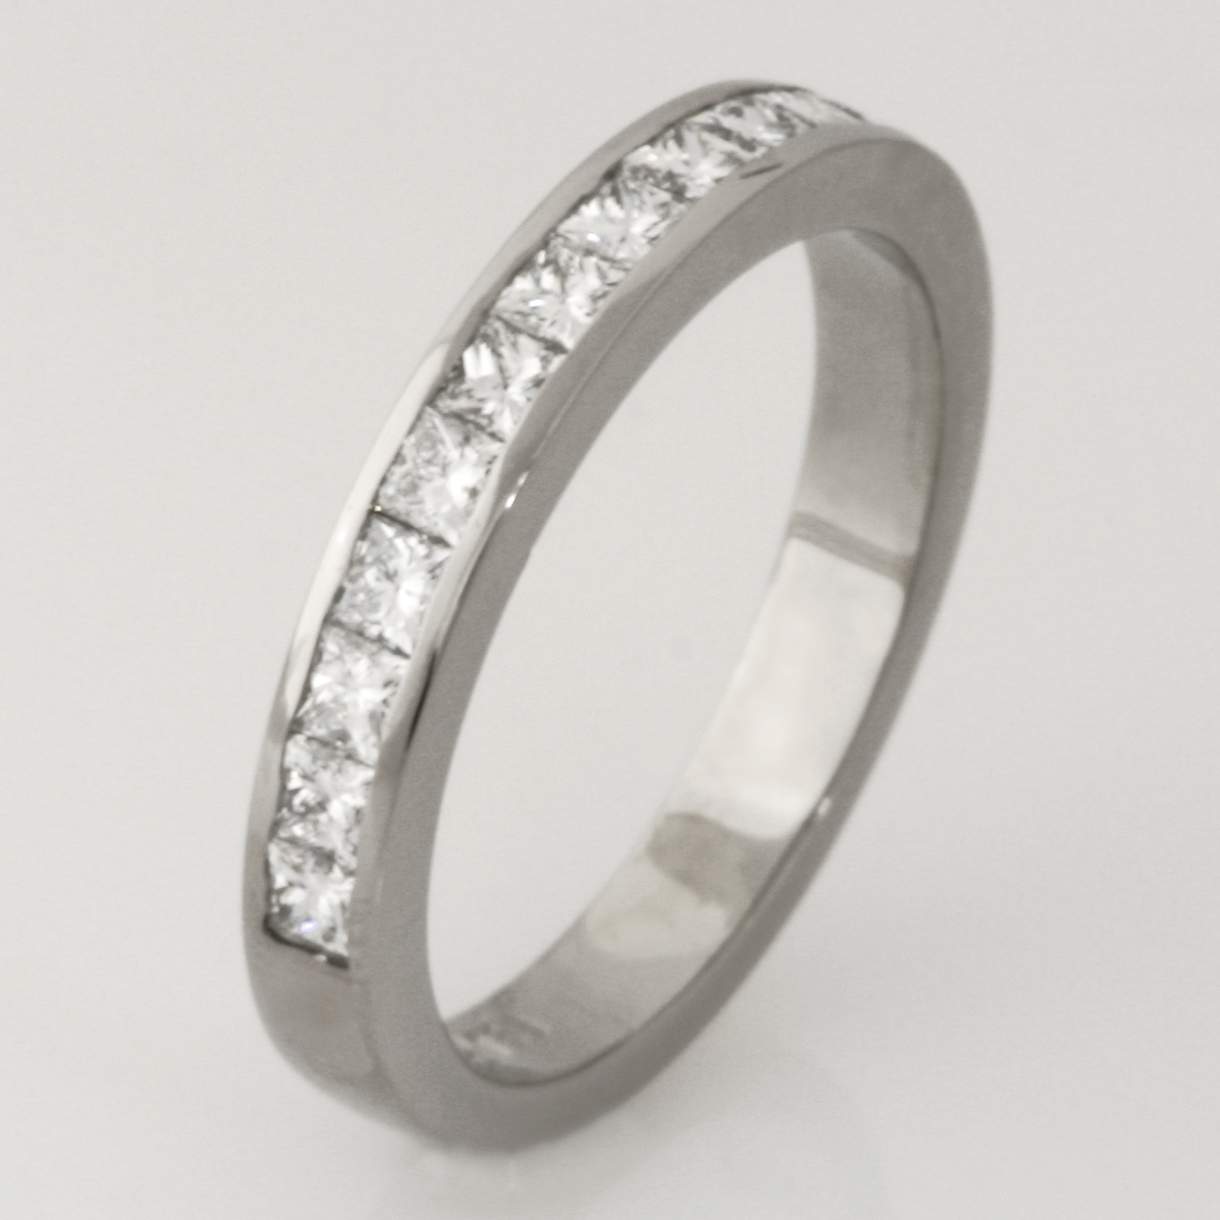 Handmade 18ct white gold princess cut diamond eternity ring